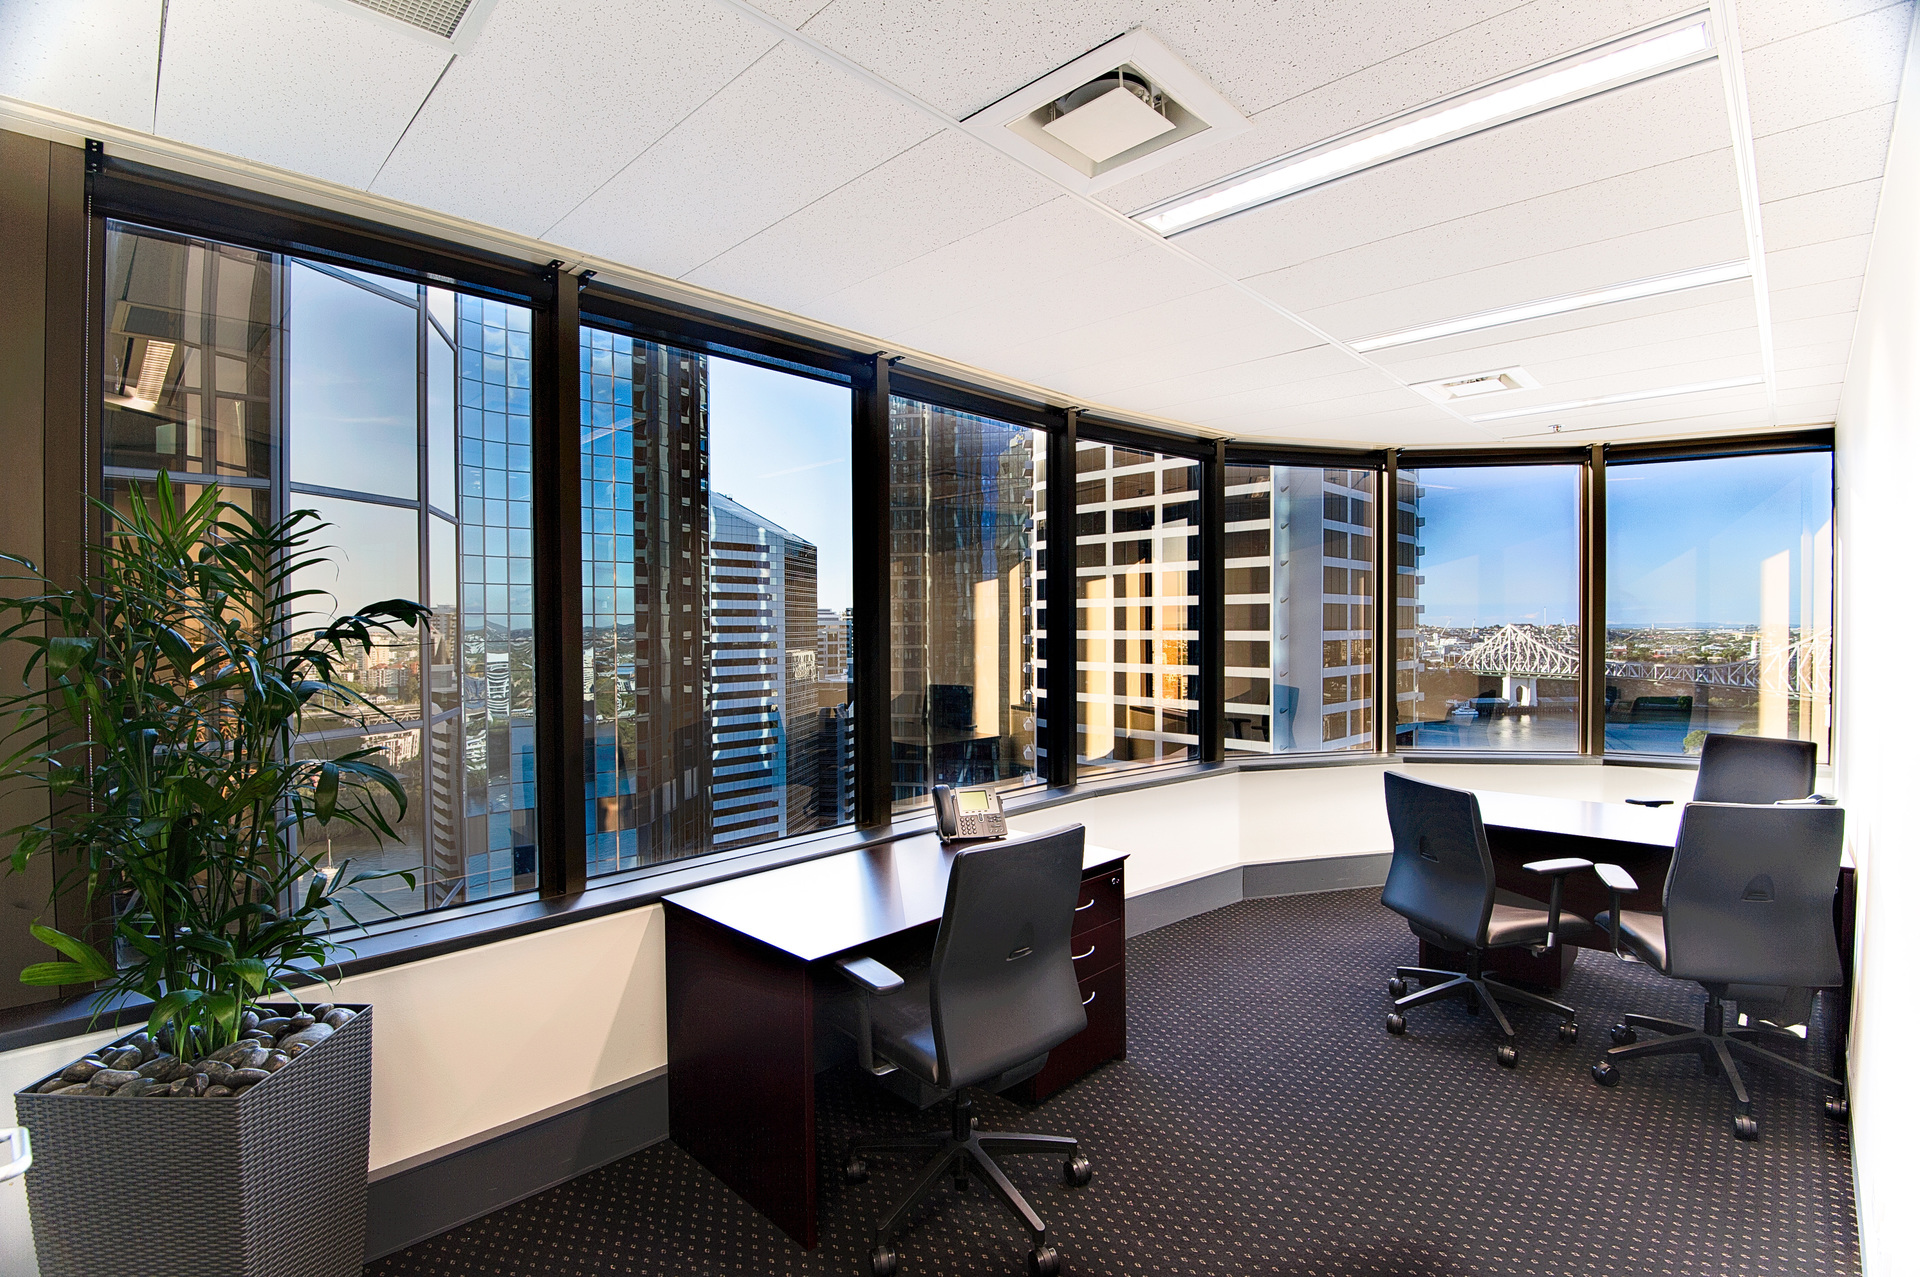 HIGH-QUALITY OFFICES THAT PROVIDE A CLASSIC WORKING LOCATIONS WITH VIEWS